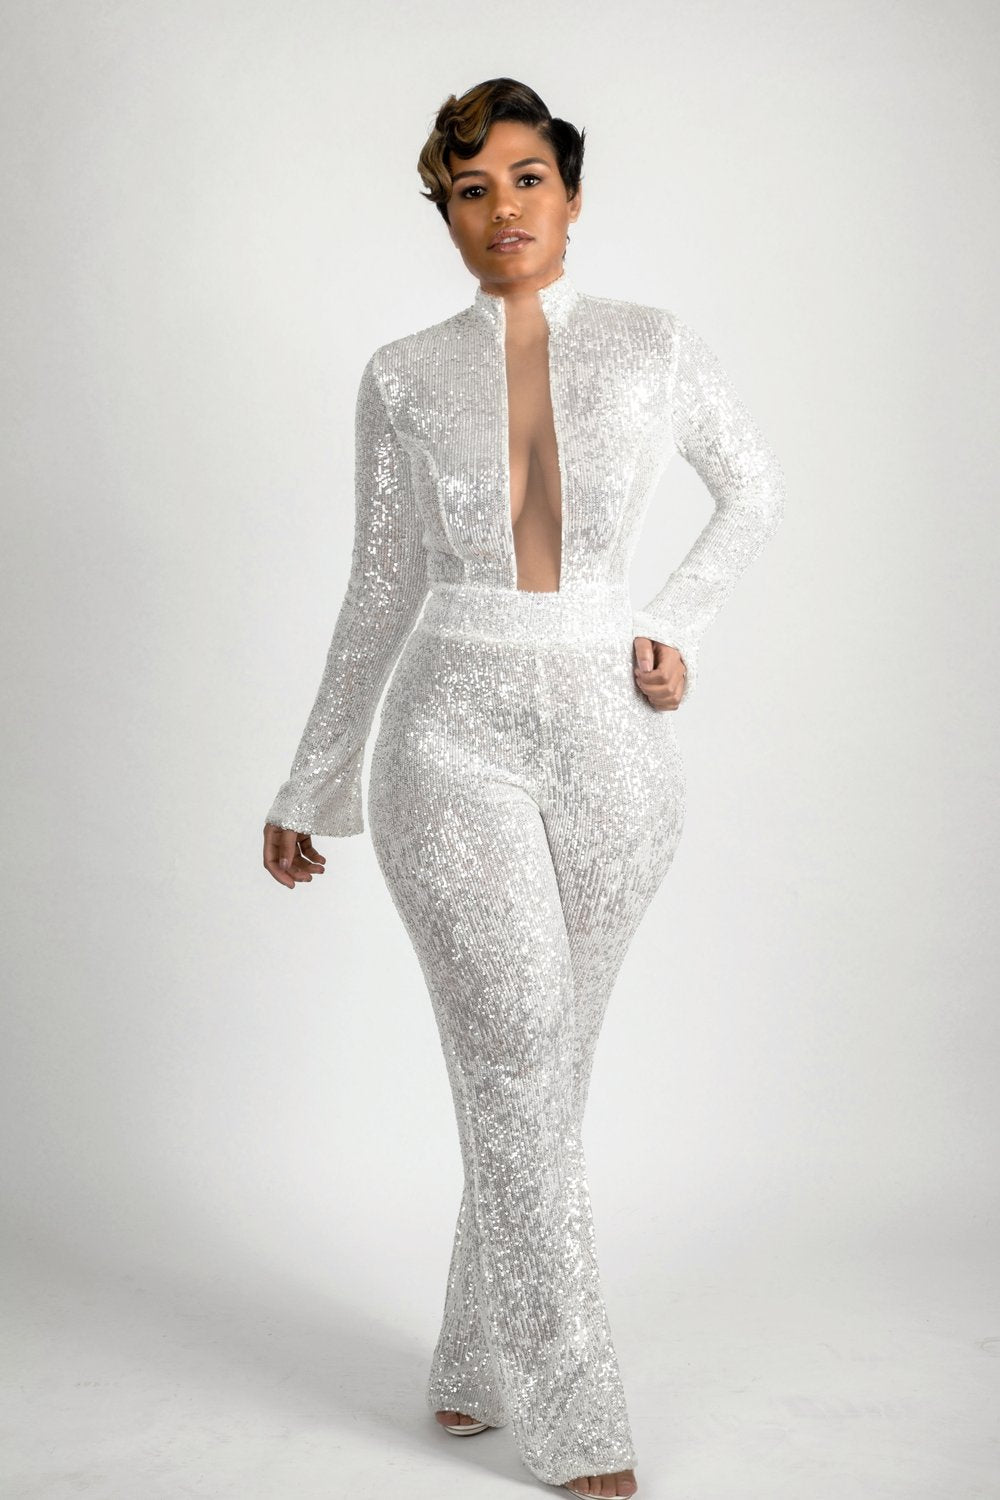 Hight neck white Sequin jumpsuit mesh open front